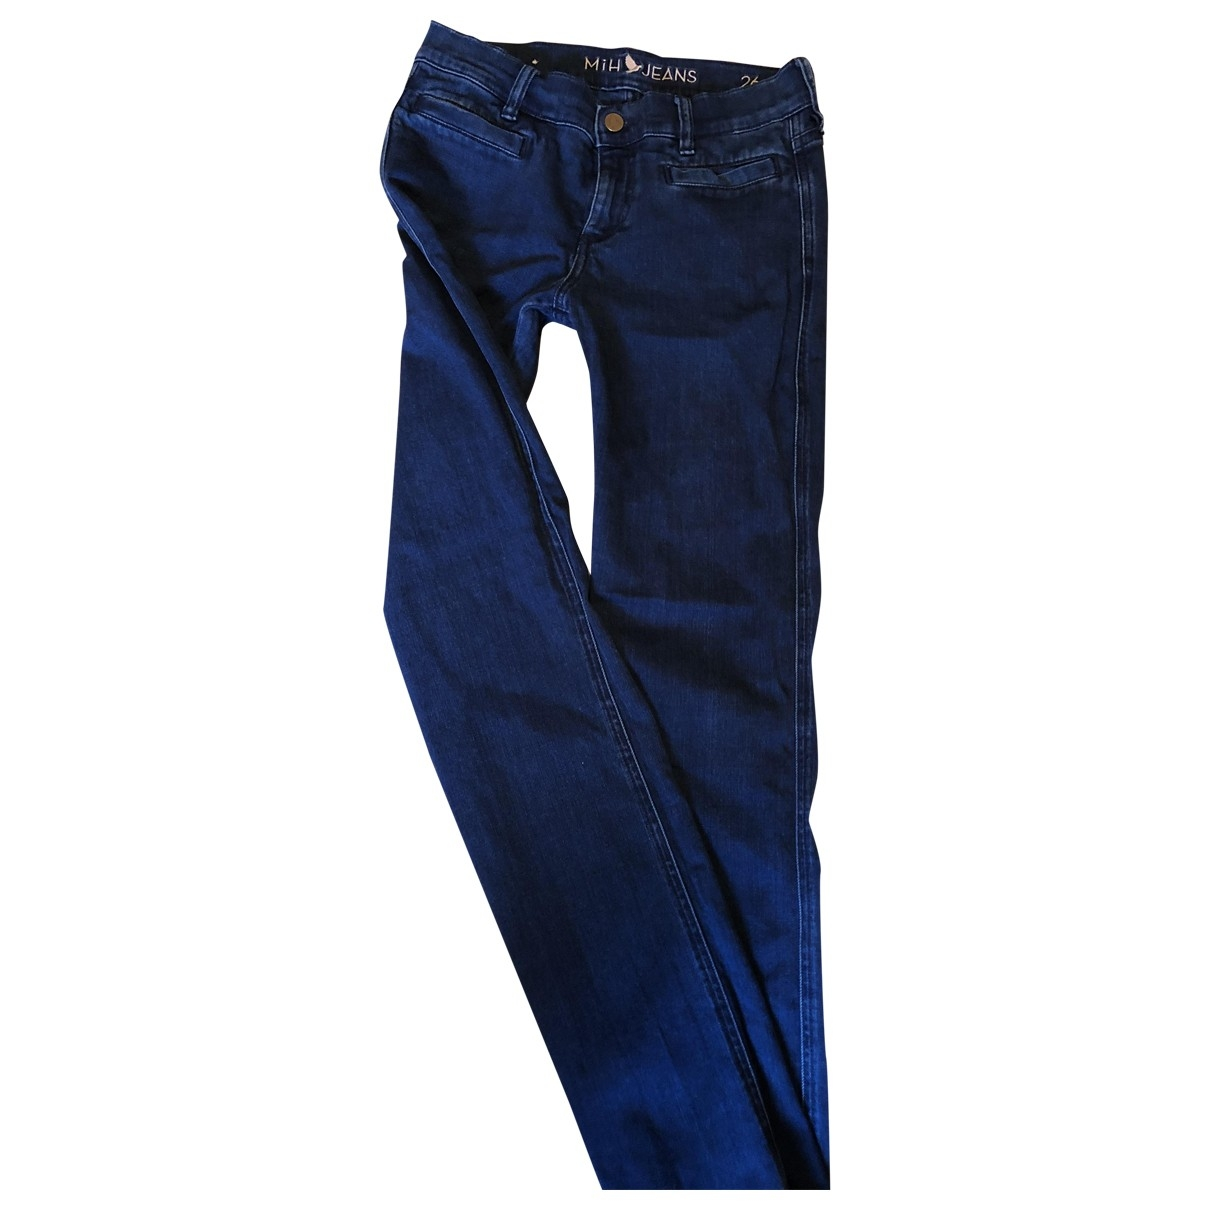 Mih Jeans \N Blue Cotton Jeans for Women 26 US